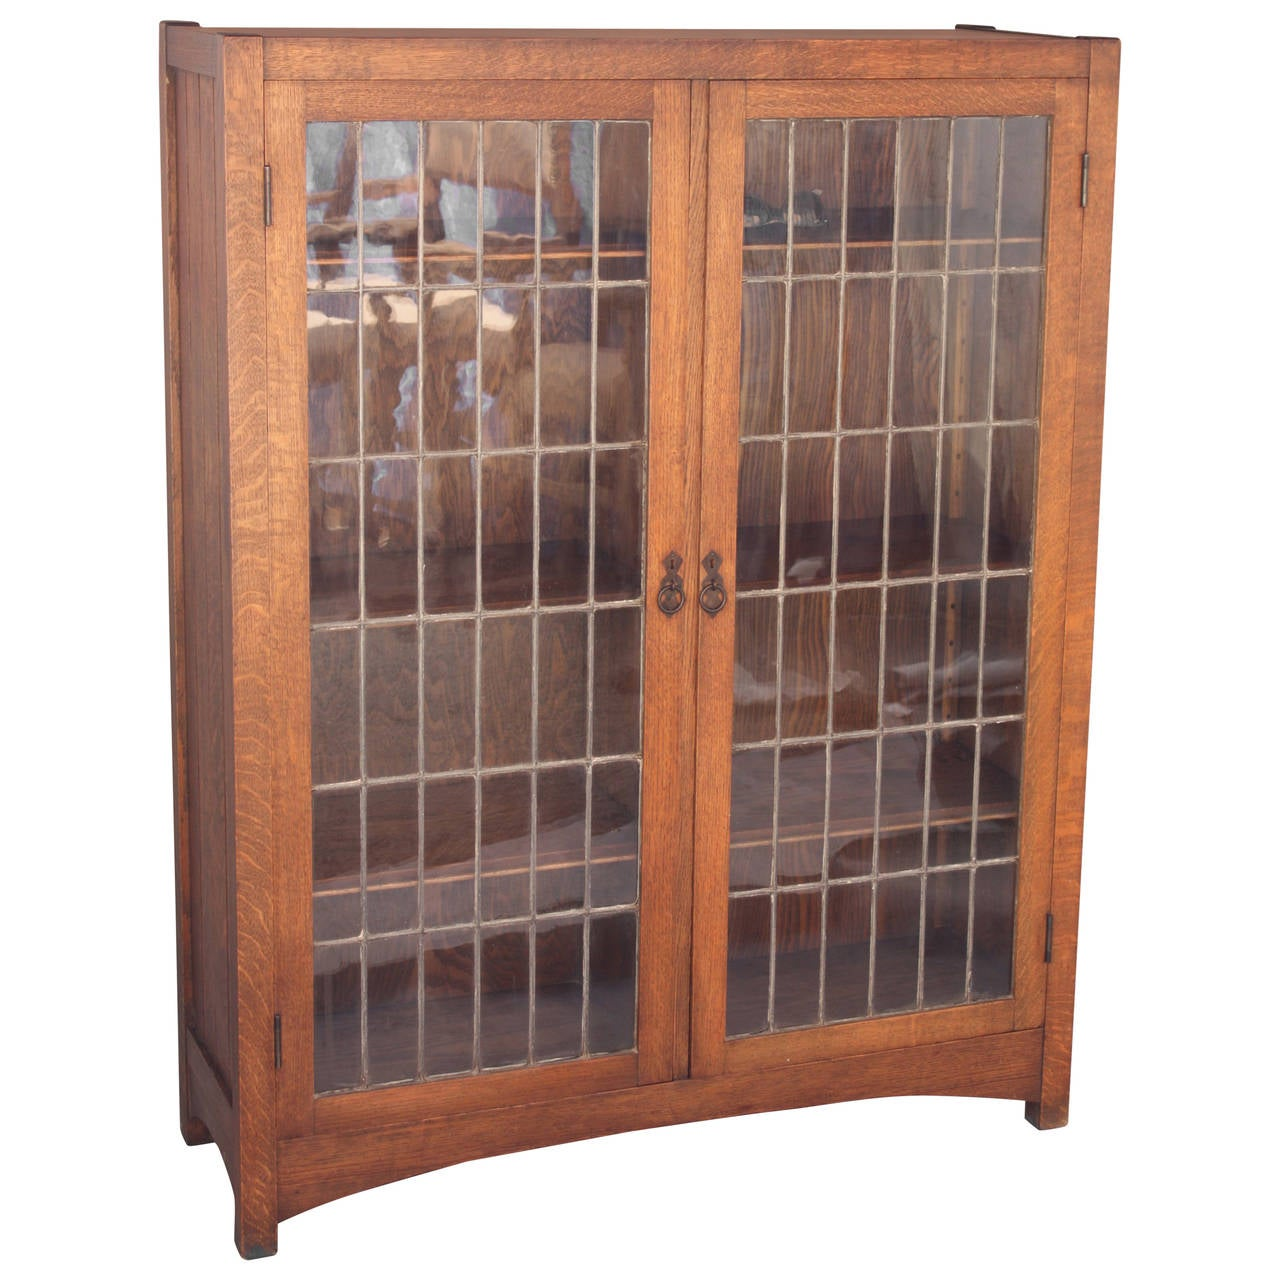 Antique 1910 arts and crafts double bookcase at 1stdibs for Arts and crafts bookcase